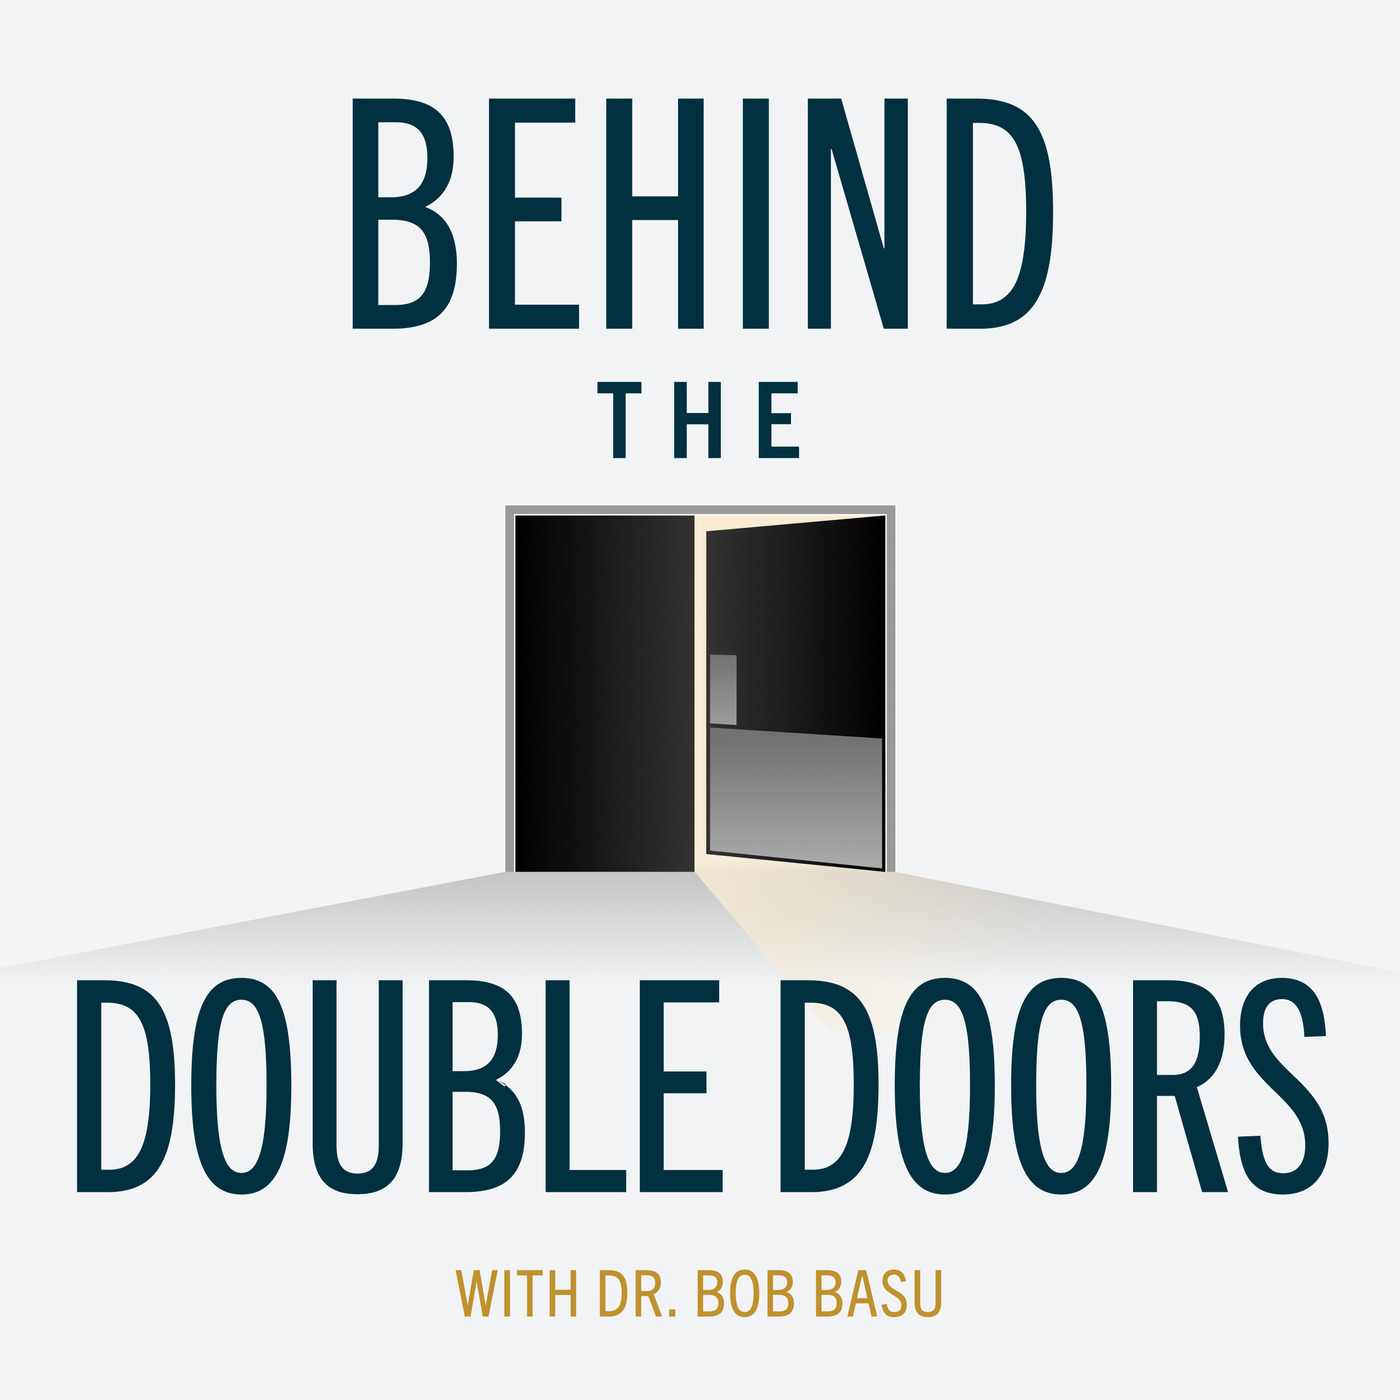 Behind the Double Doors: The Houston Plastic Surgery Podcast 6-boss-brittany-banks-90-day-fiance-breast-revision-surgery: Boss Brittany from 90 Day Fiance Shares Her Breast Implant Revision Experience